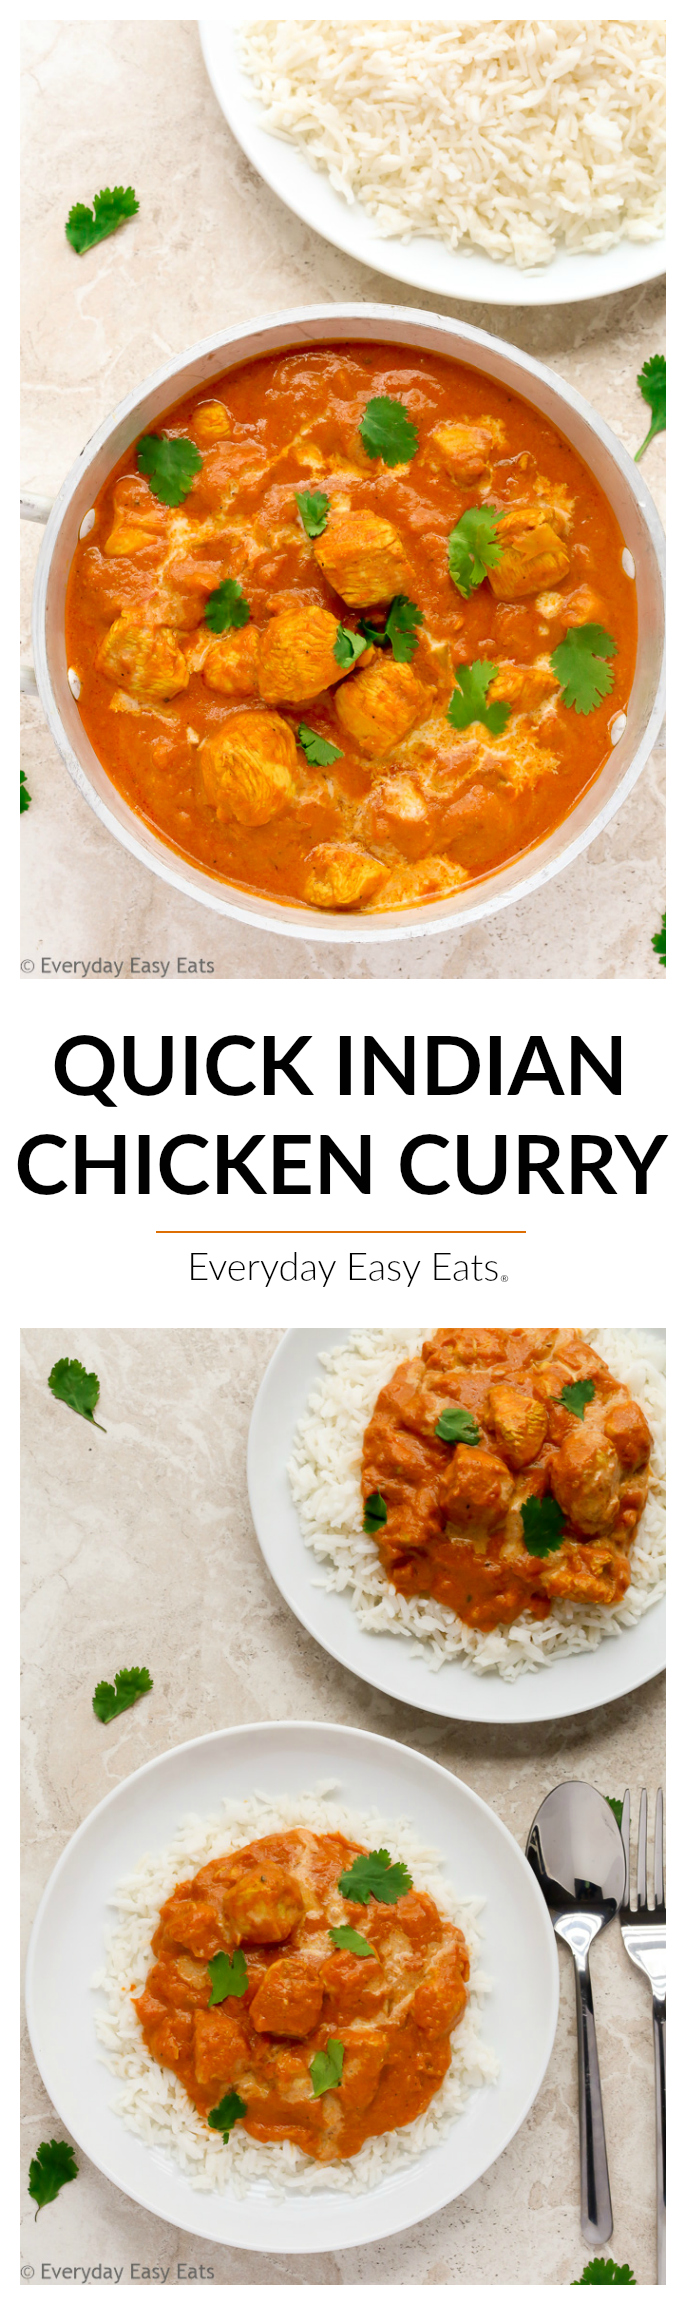 Easy Indian Chicken Curry with Evaporated Milk | Everyday ...